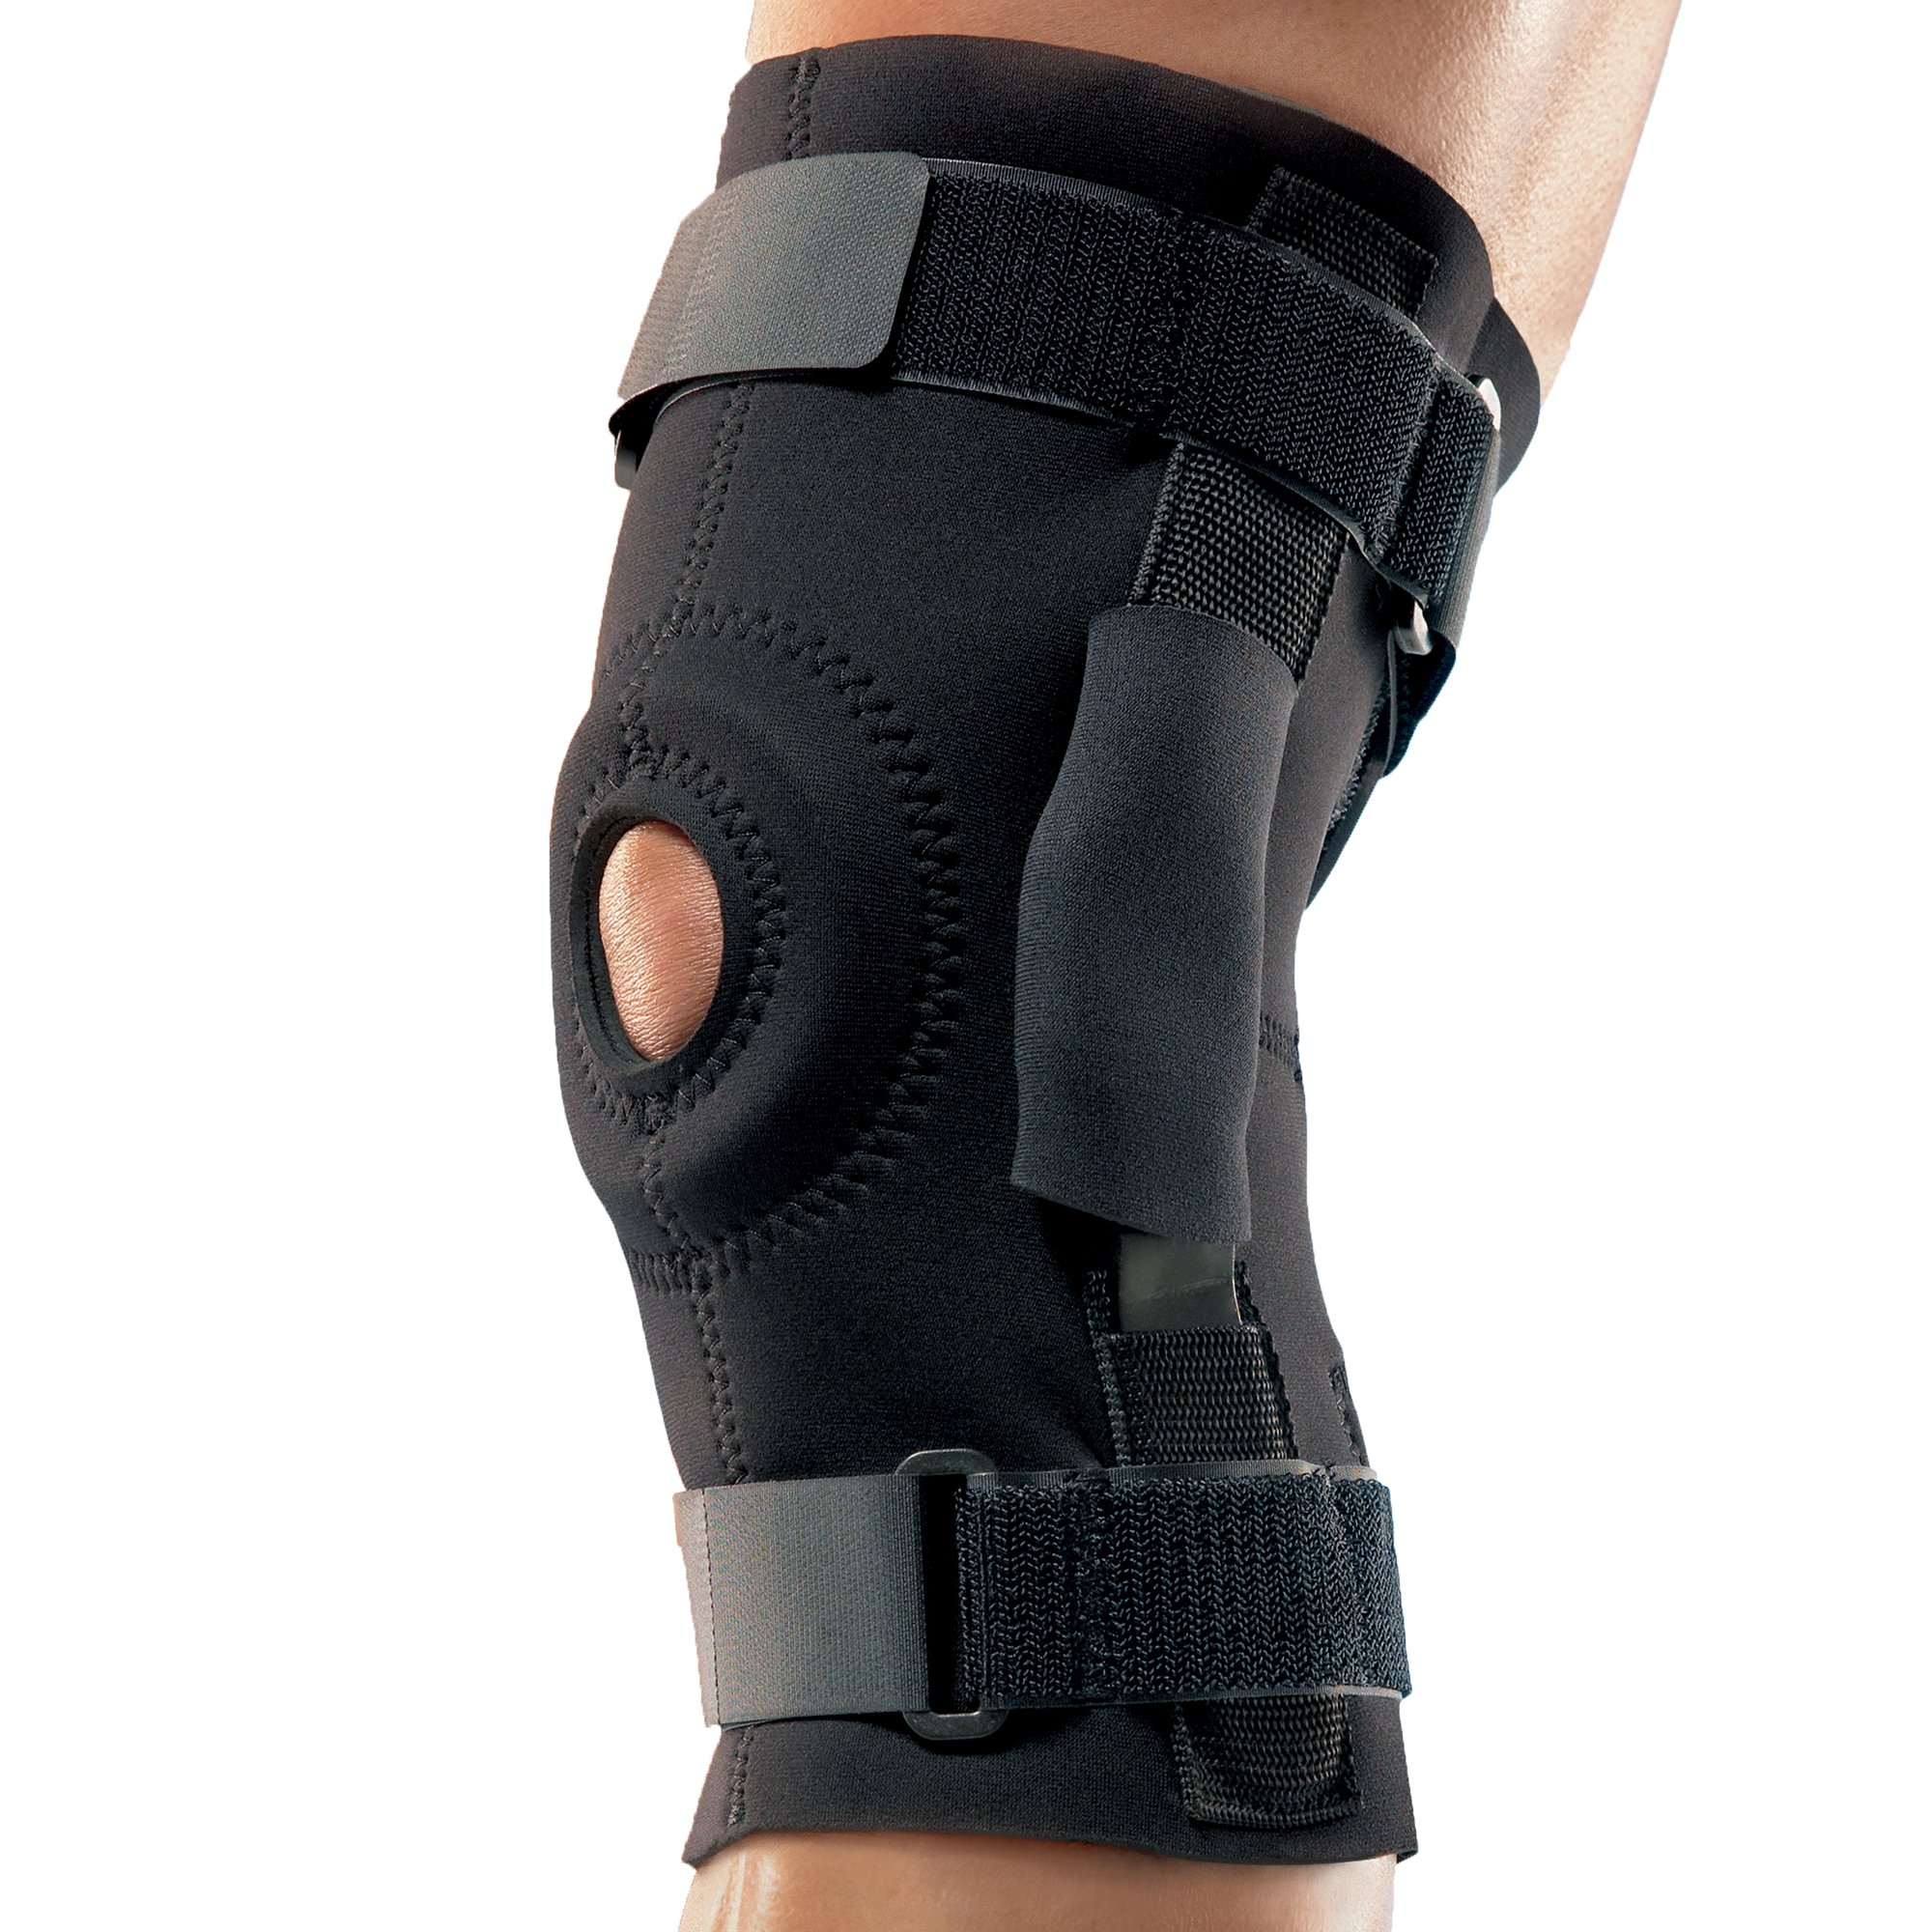 Futuro Hinged Knee Brace, Adjust to Fit, Black, Firm Stabilizing Support